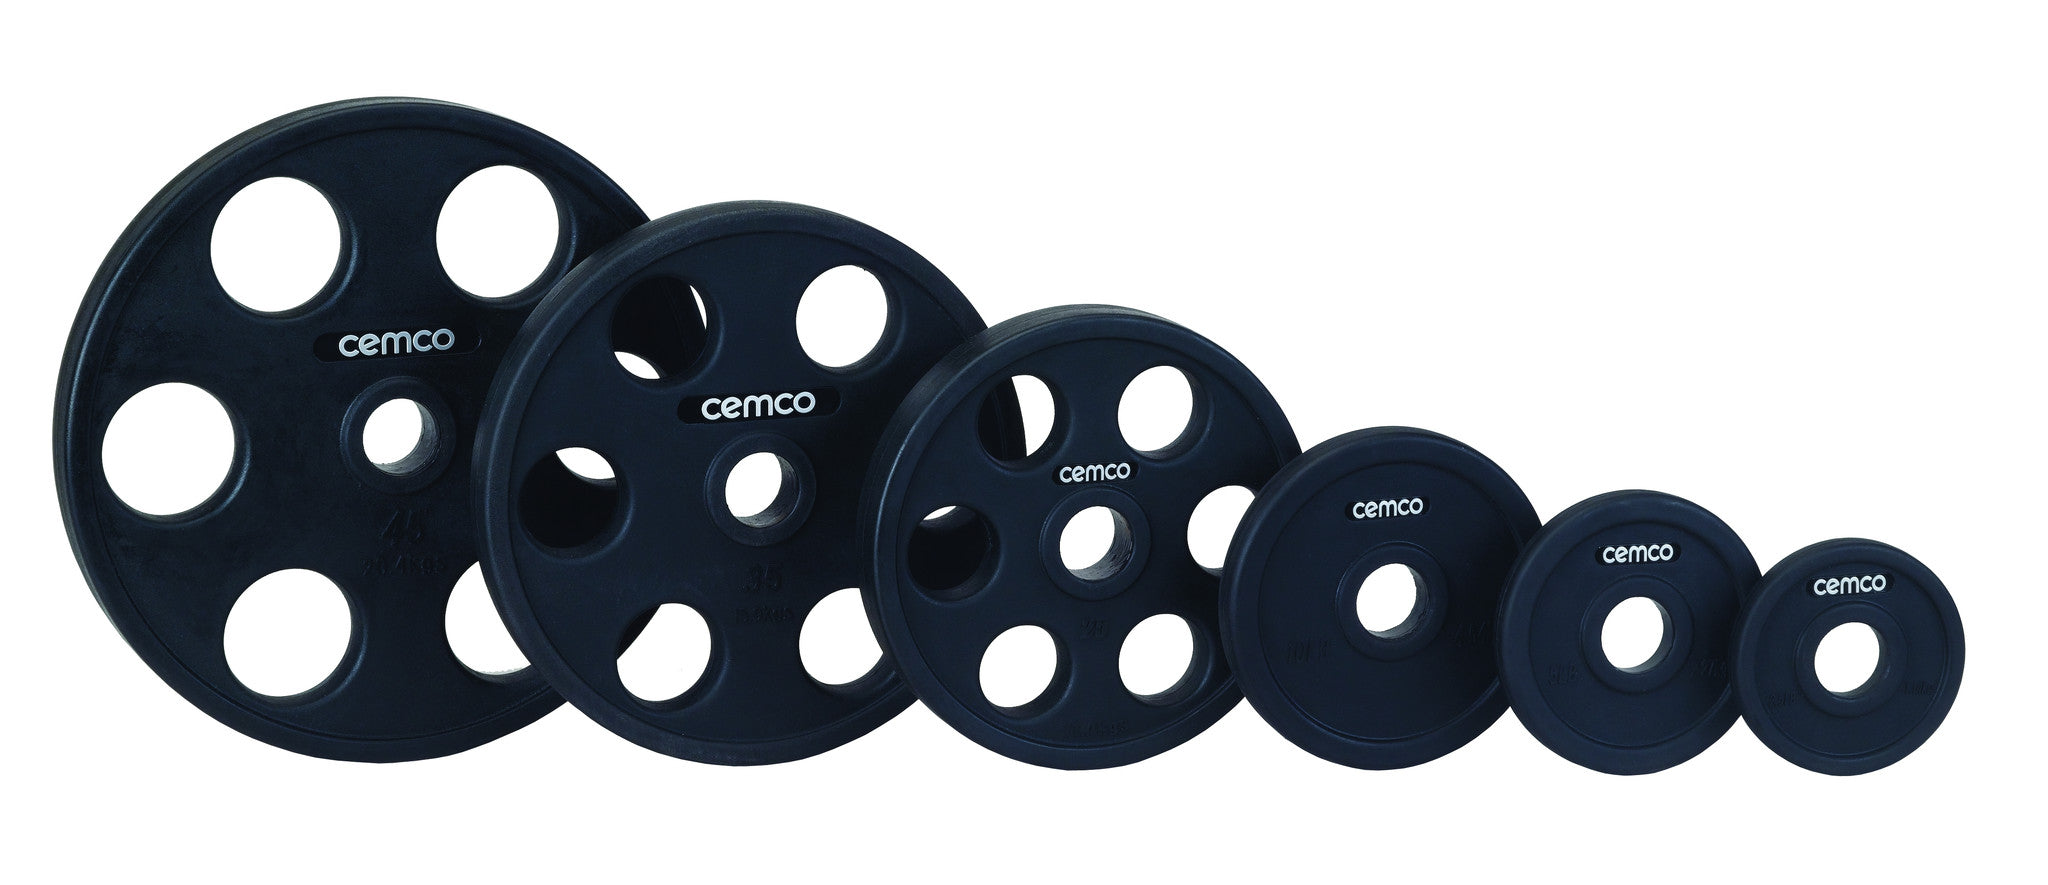 Cemco Power Grip Urethane Encased Olympic Weight Plates  - 1260 LB Set